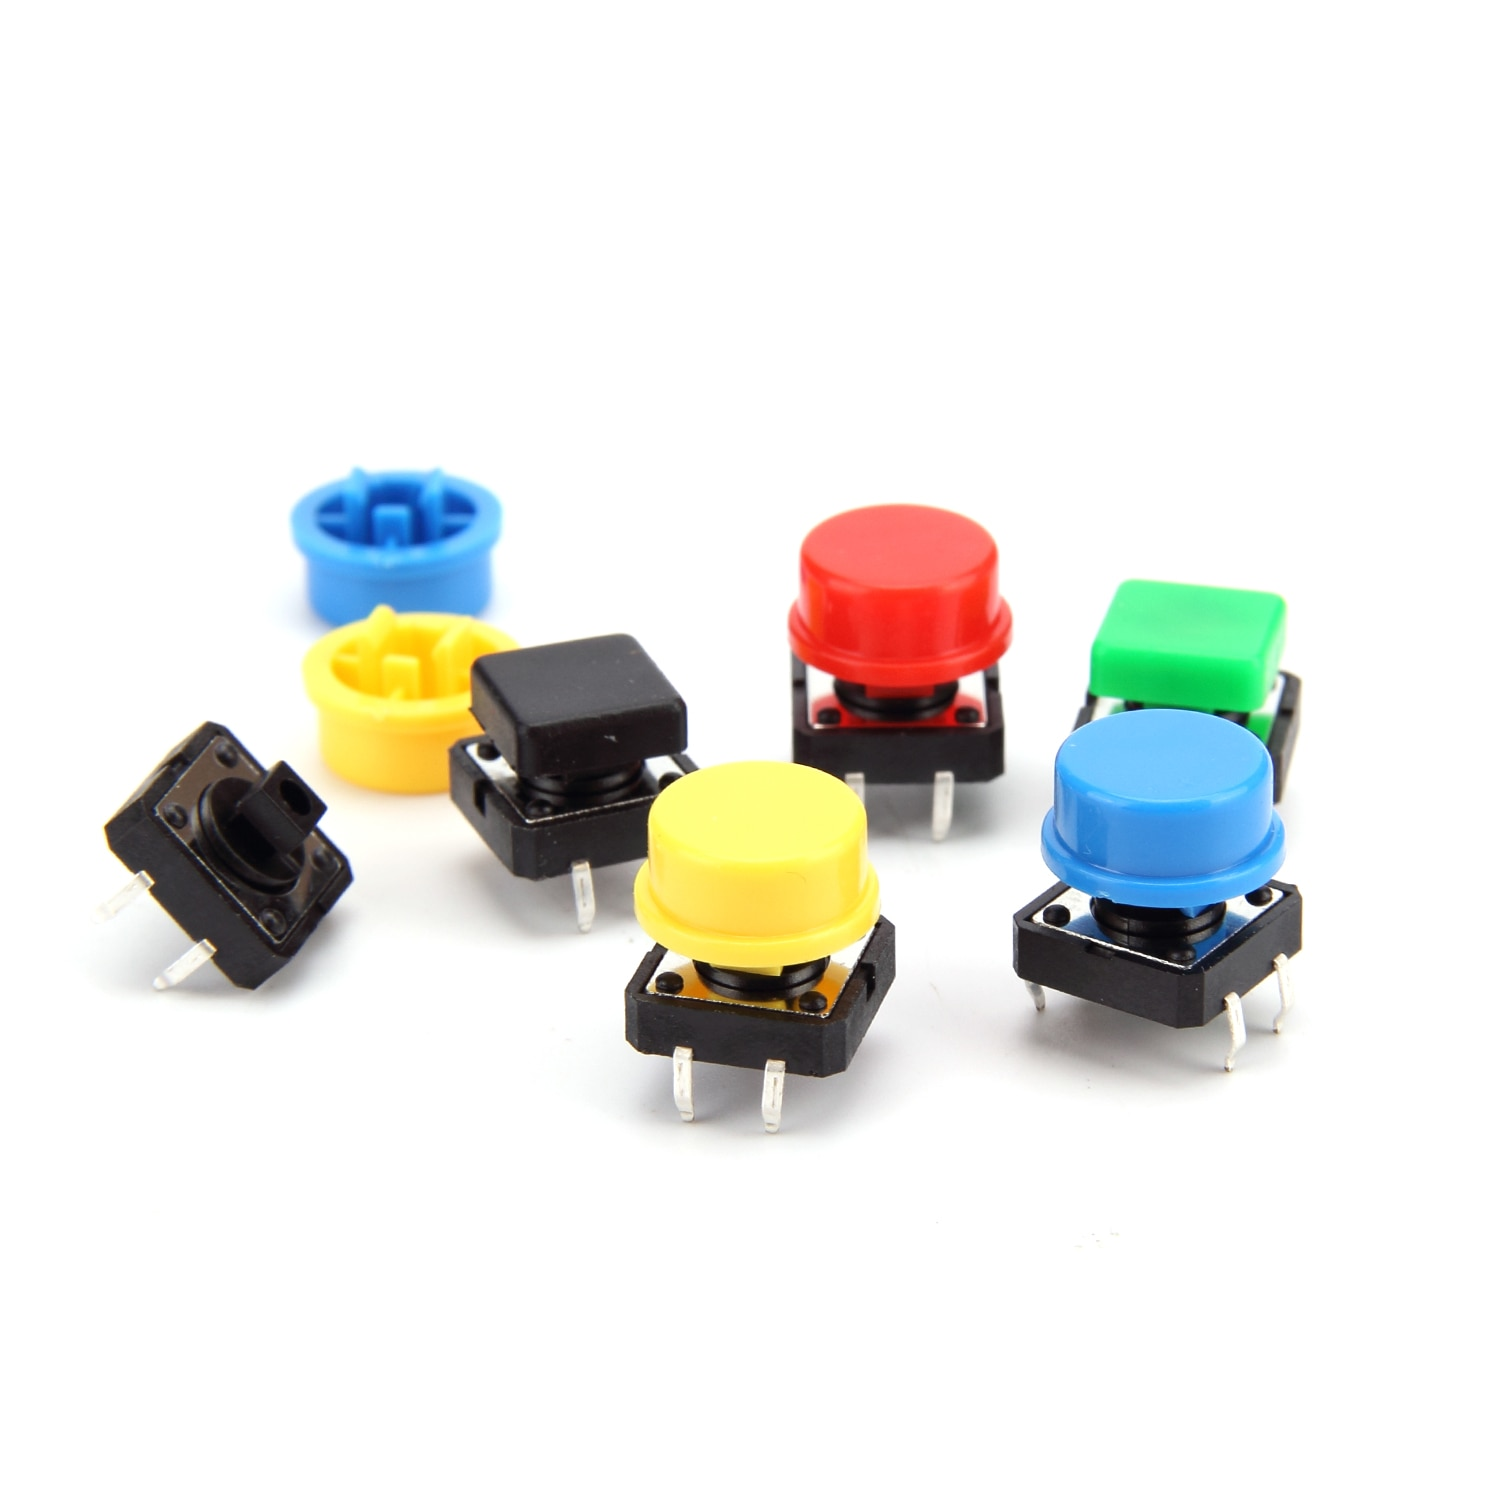 LAFVIN Electronics component pack for Arduino UNO, MEGA2560